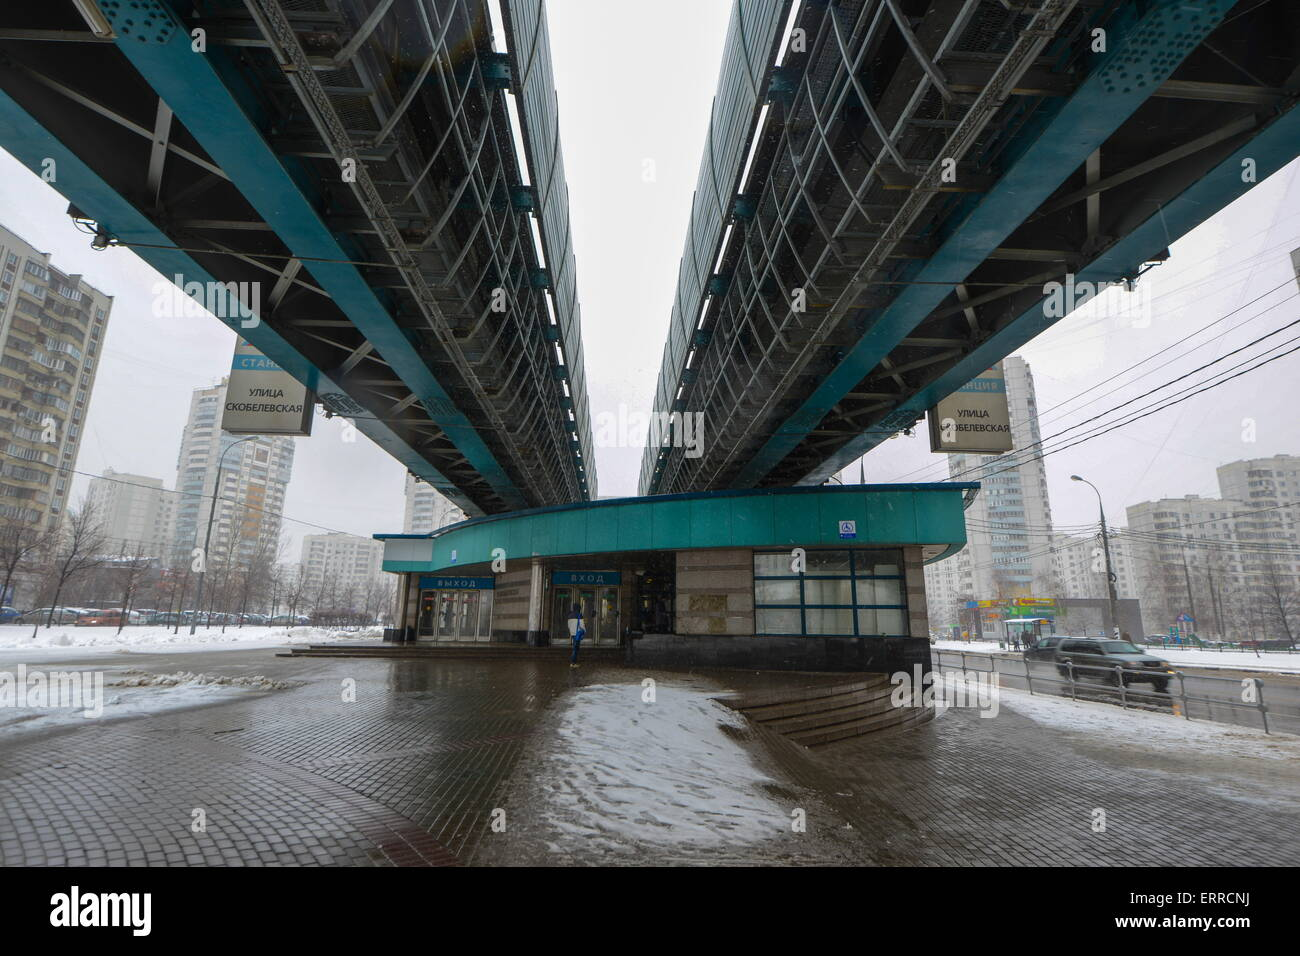 New stations of the metropolitan Butovskaya metro line: passengers are worried and delighted 56